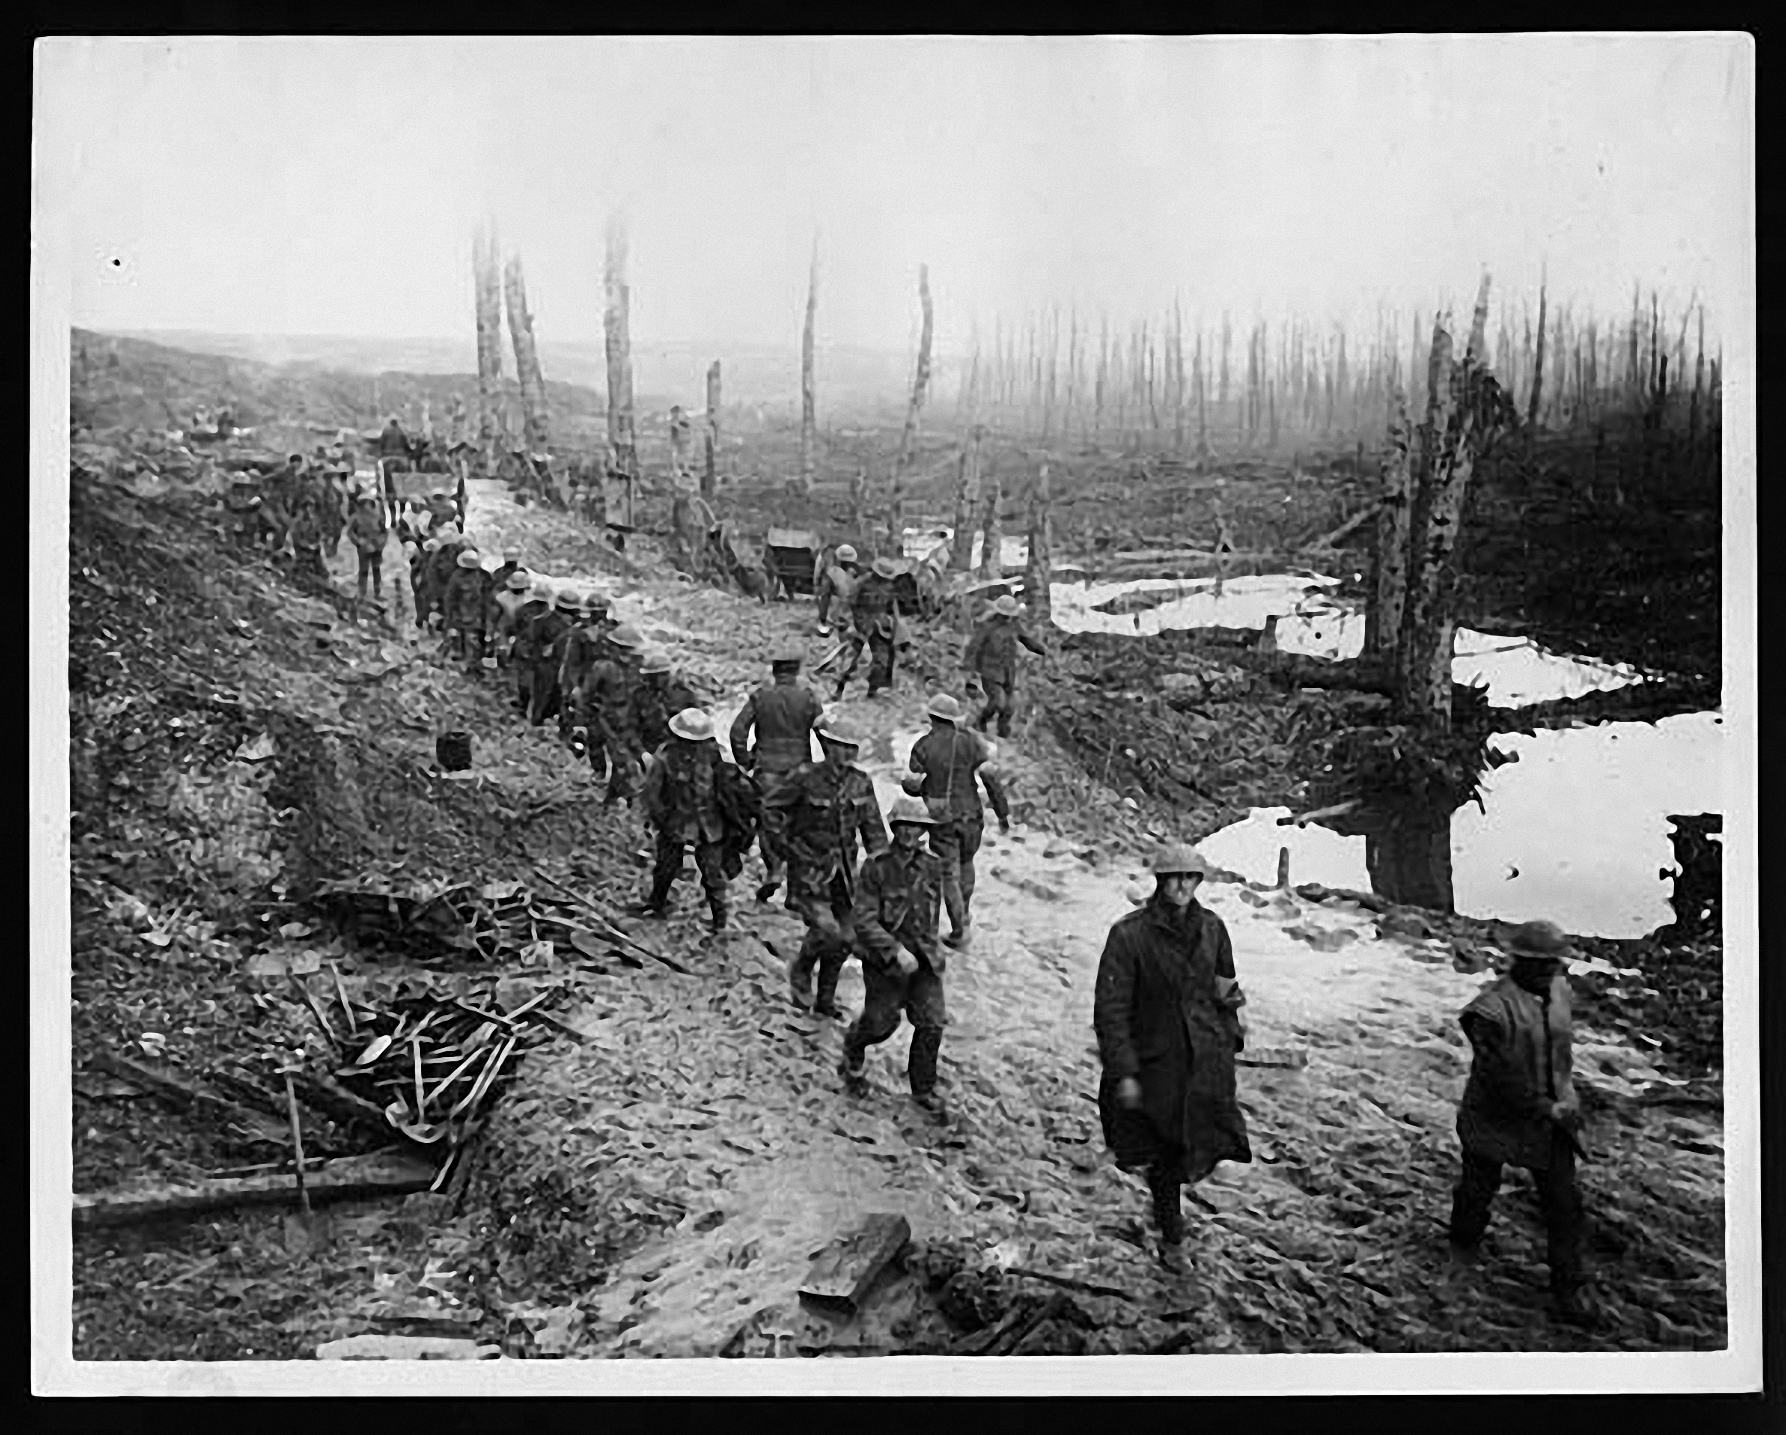 The shattered landscape at the Somme, likely dated August 1916.